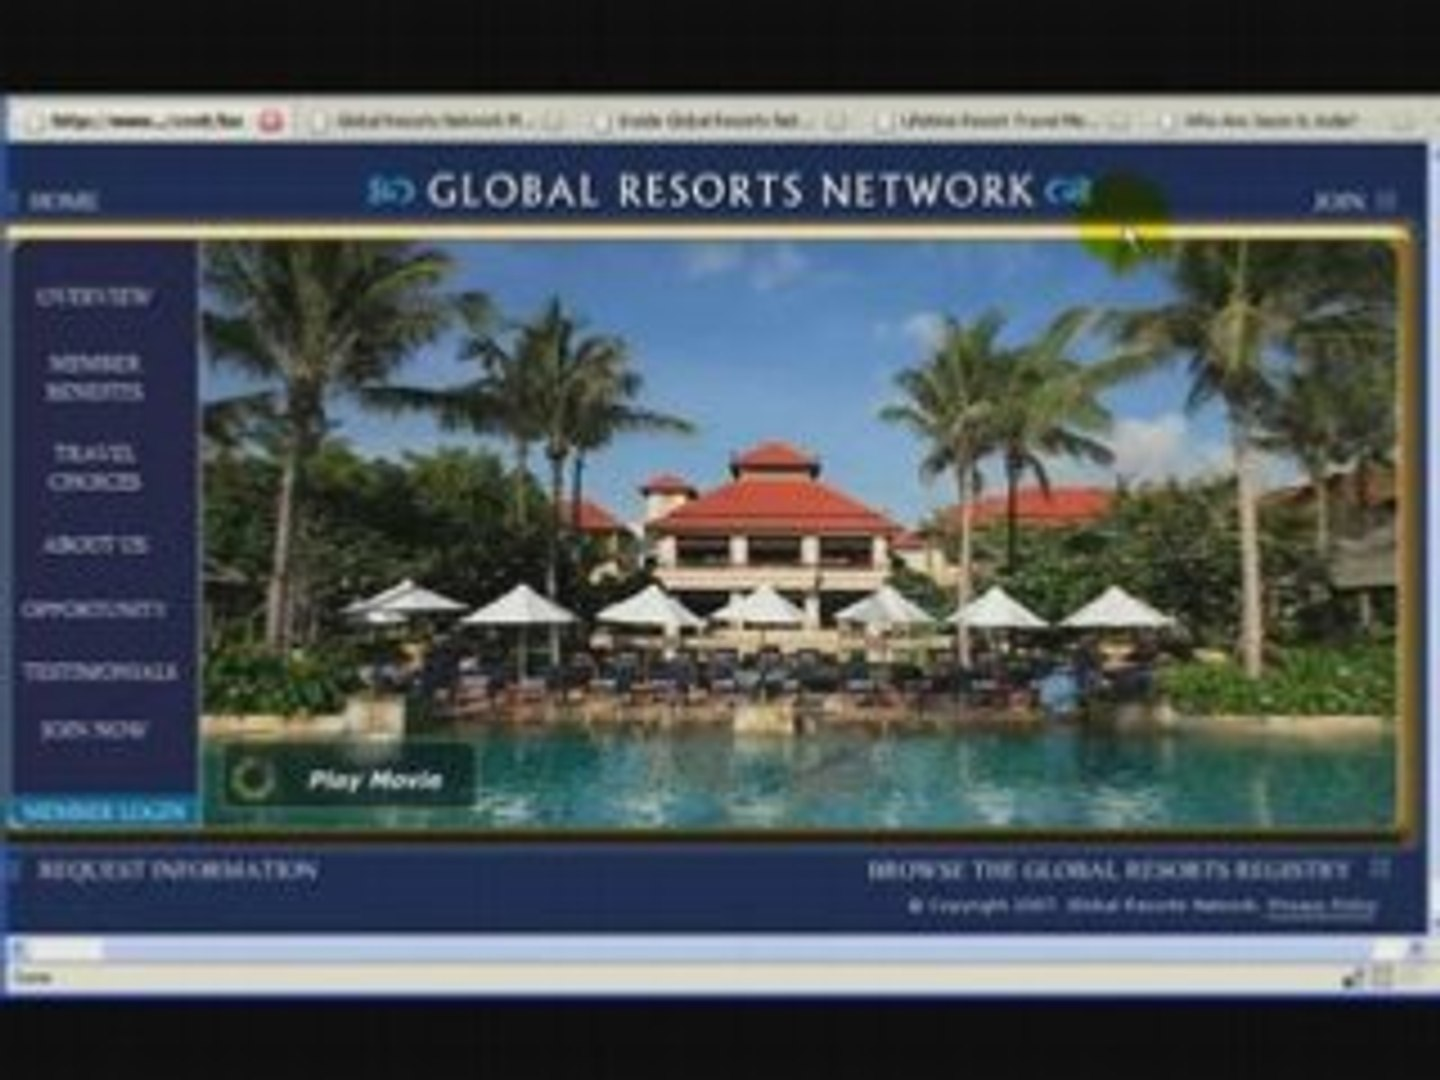 Global Resorts Network - The Income Stream Overview